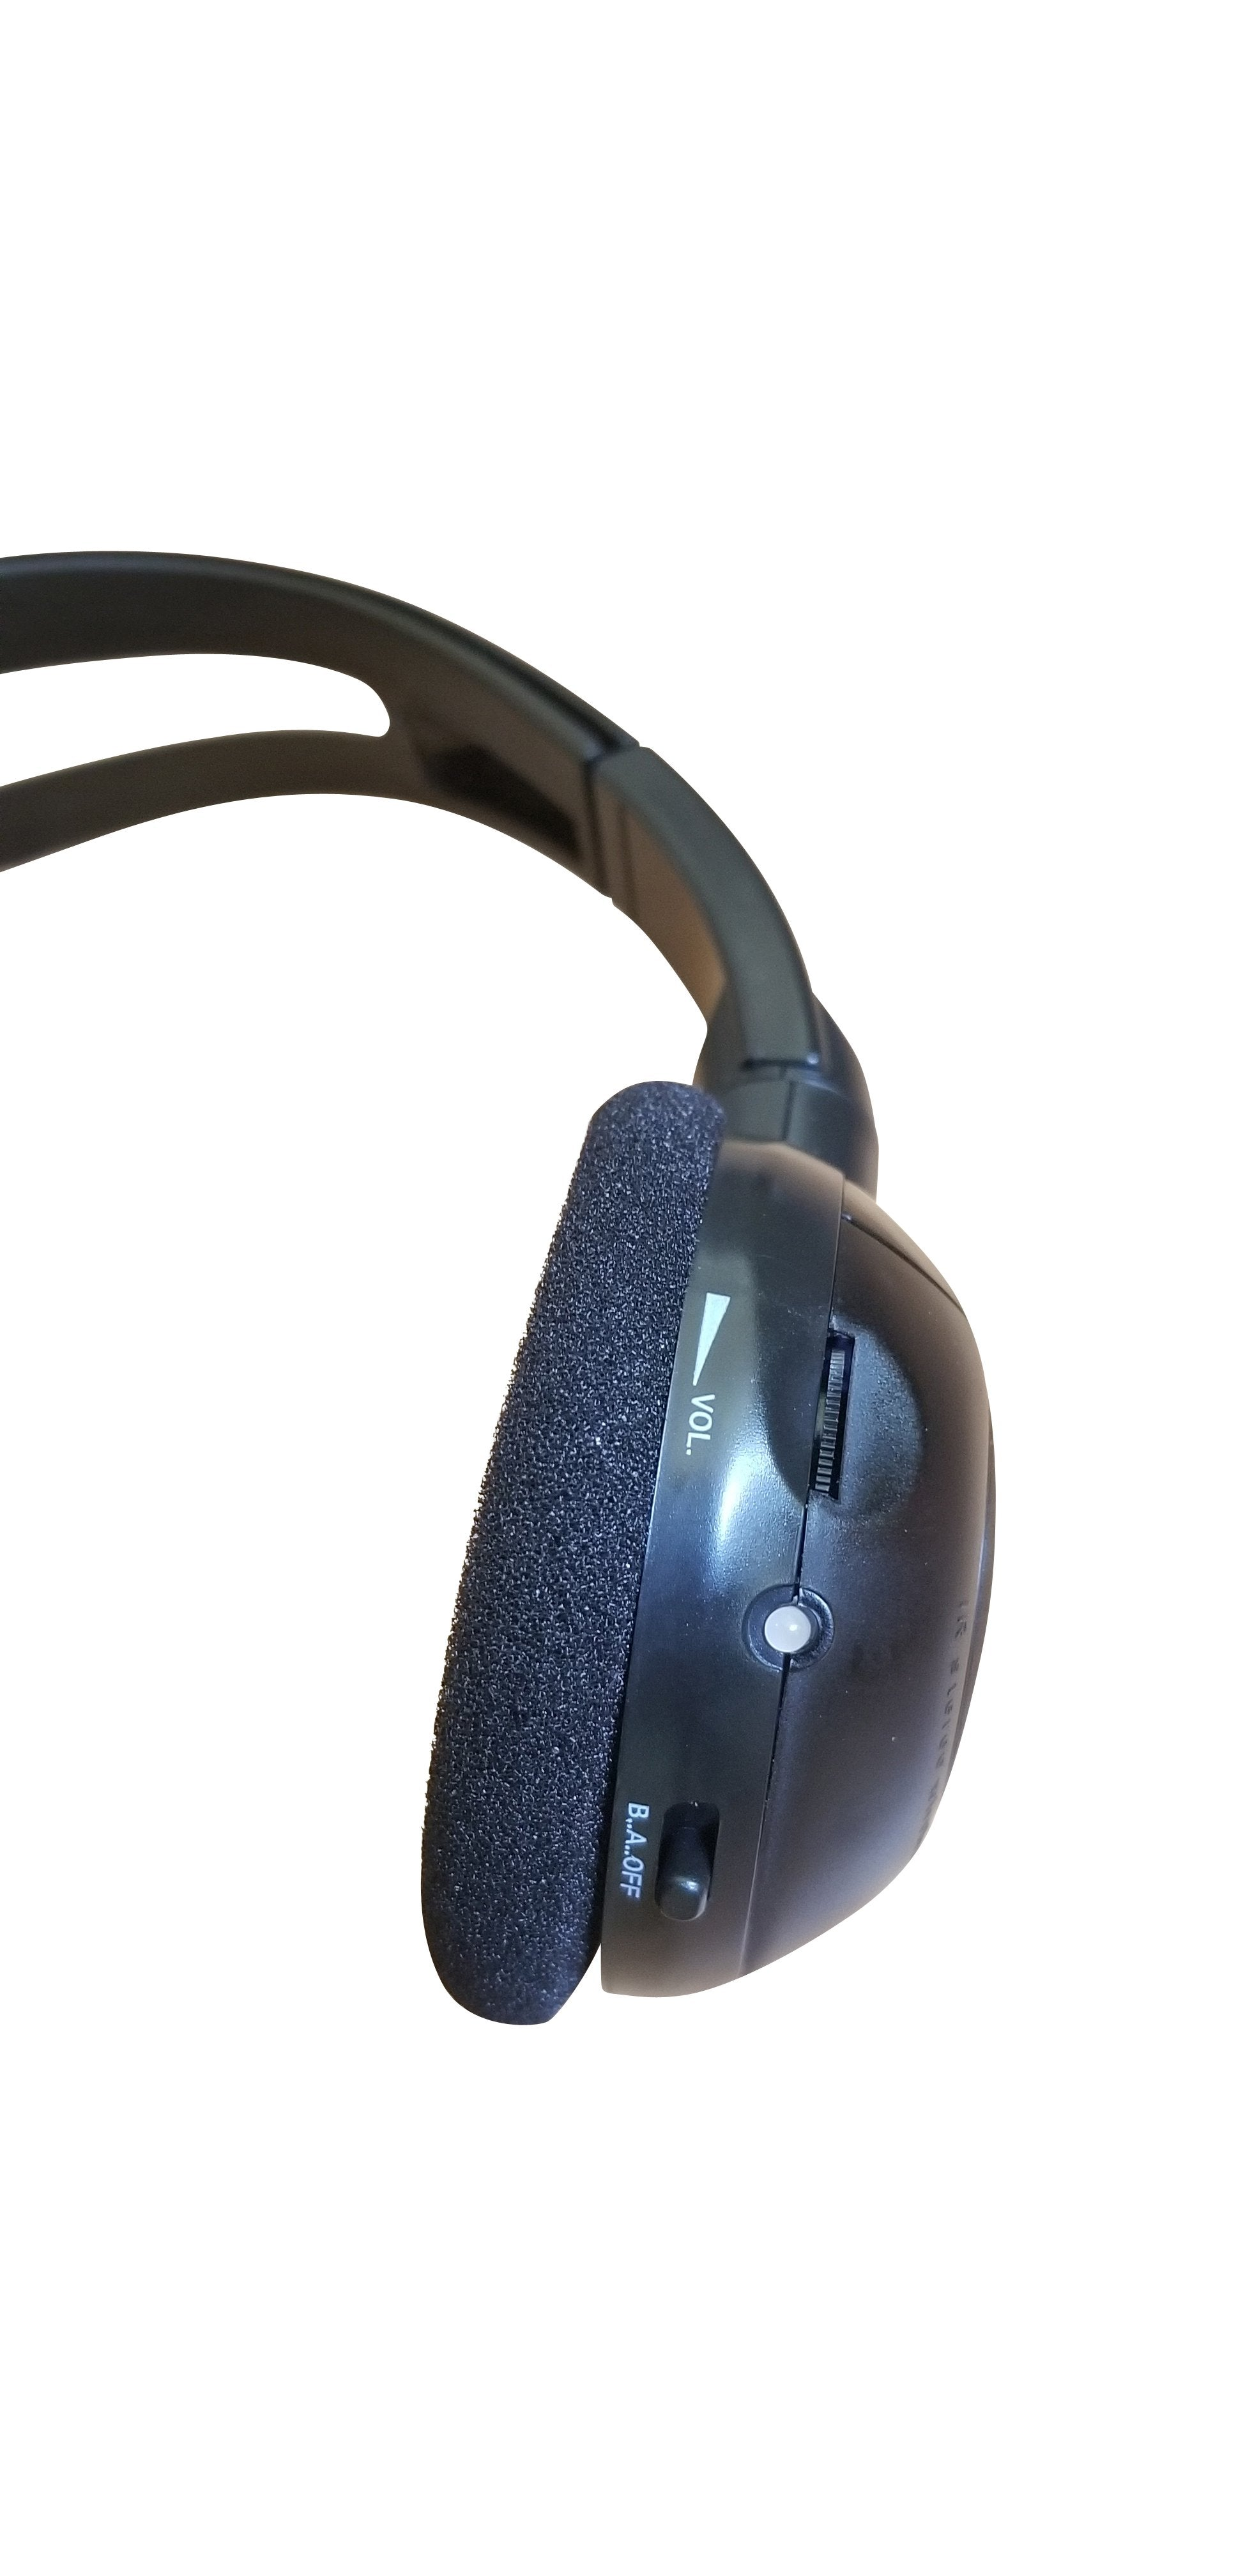 2010 Ford Expedition Wireless DVD Headphone